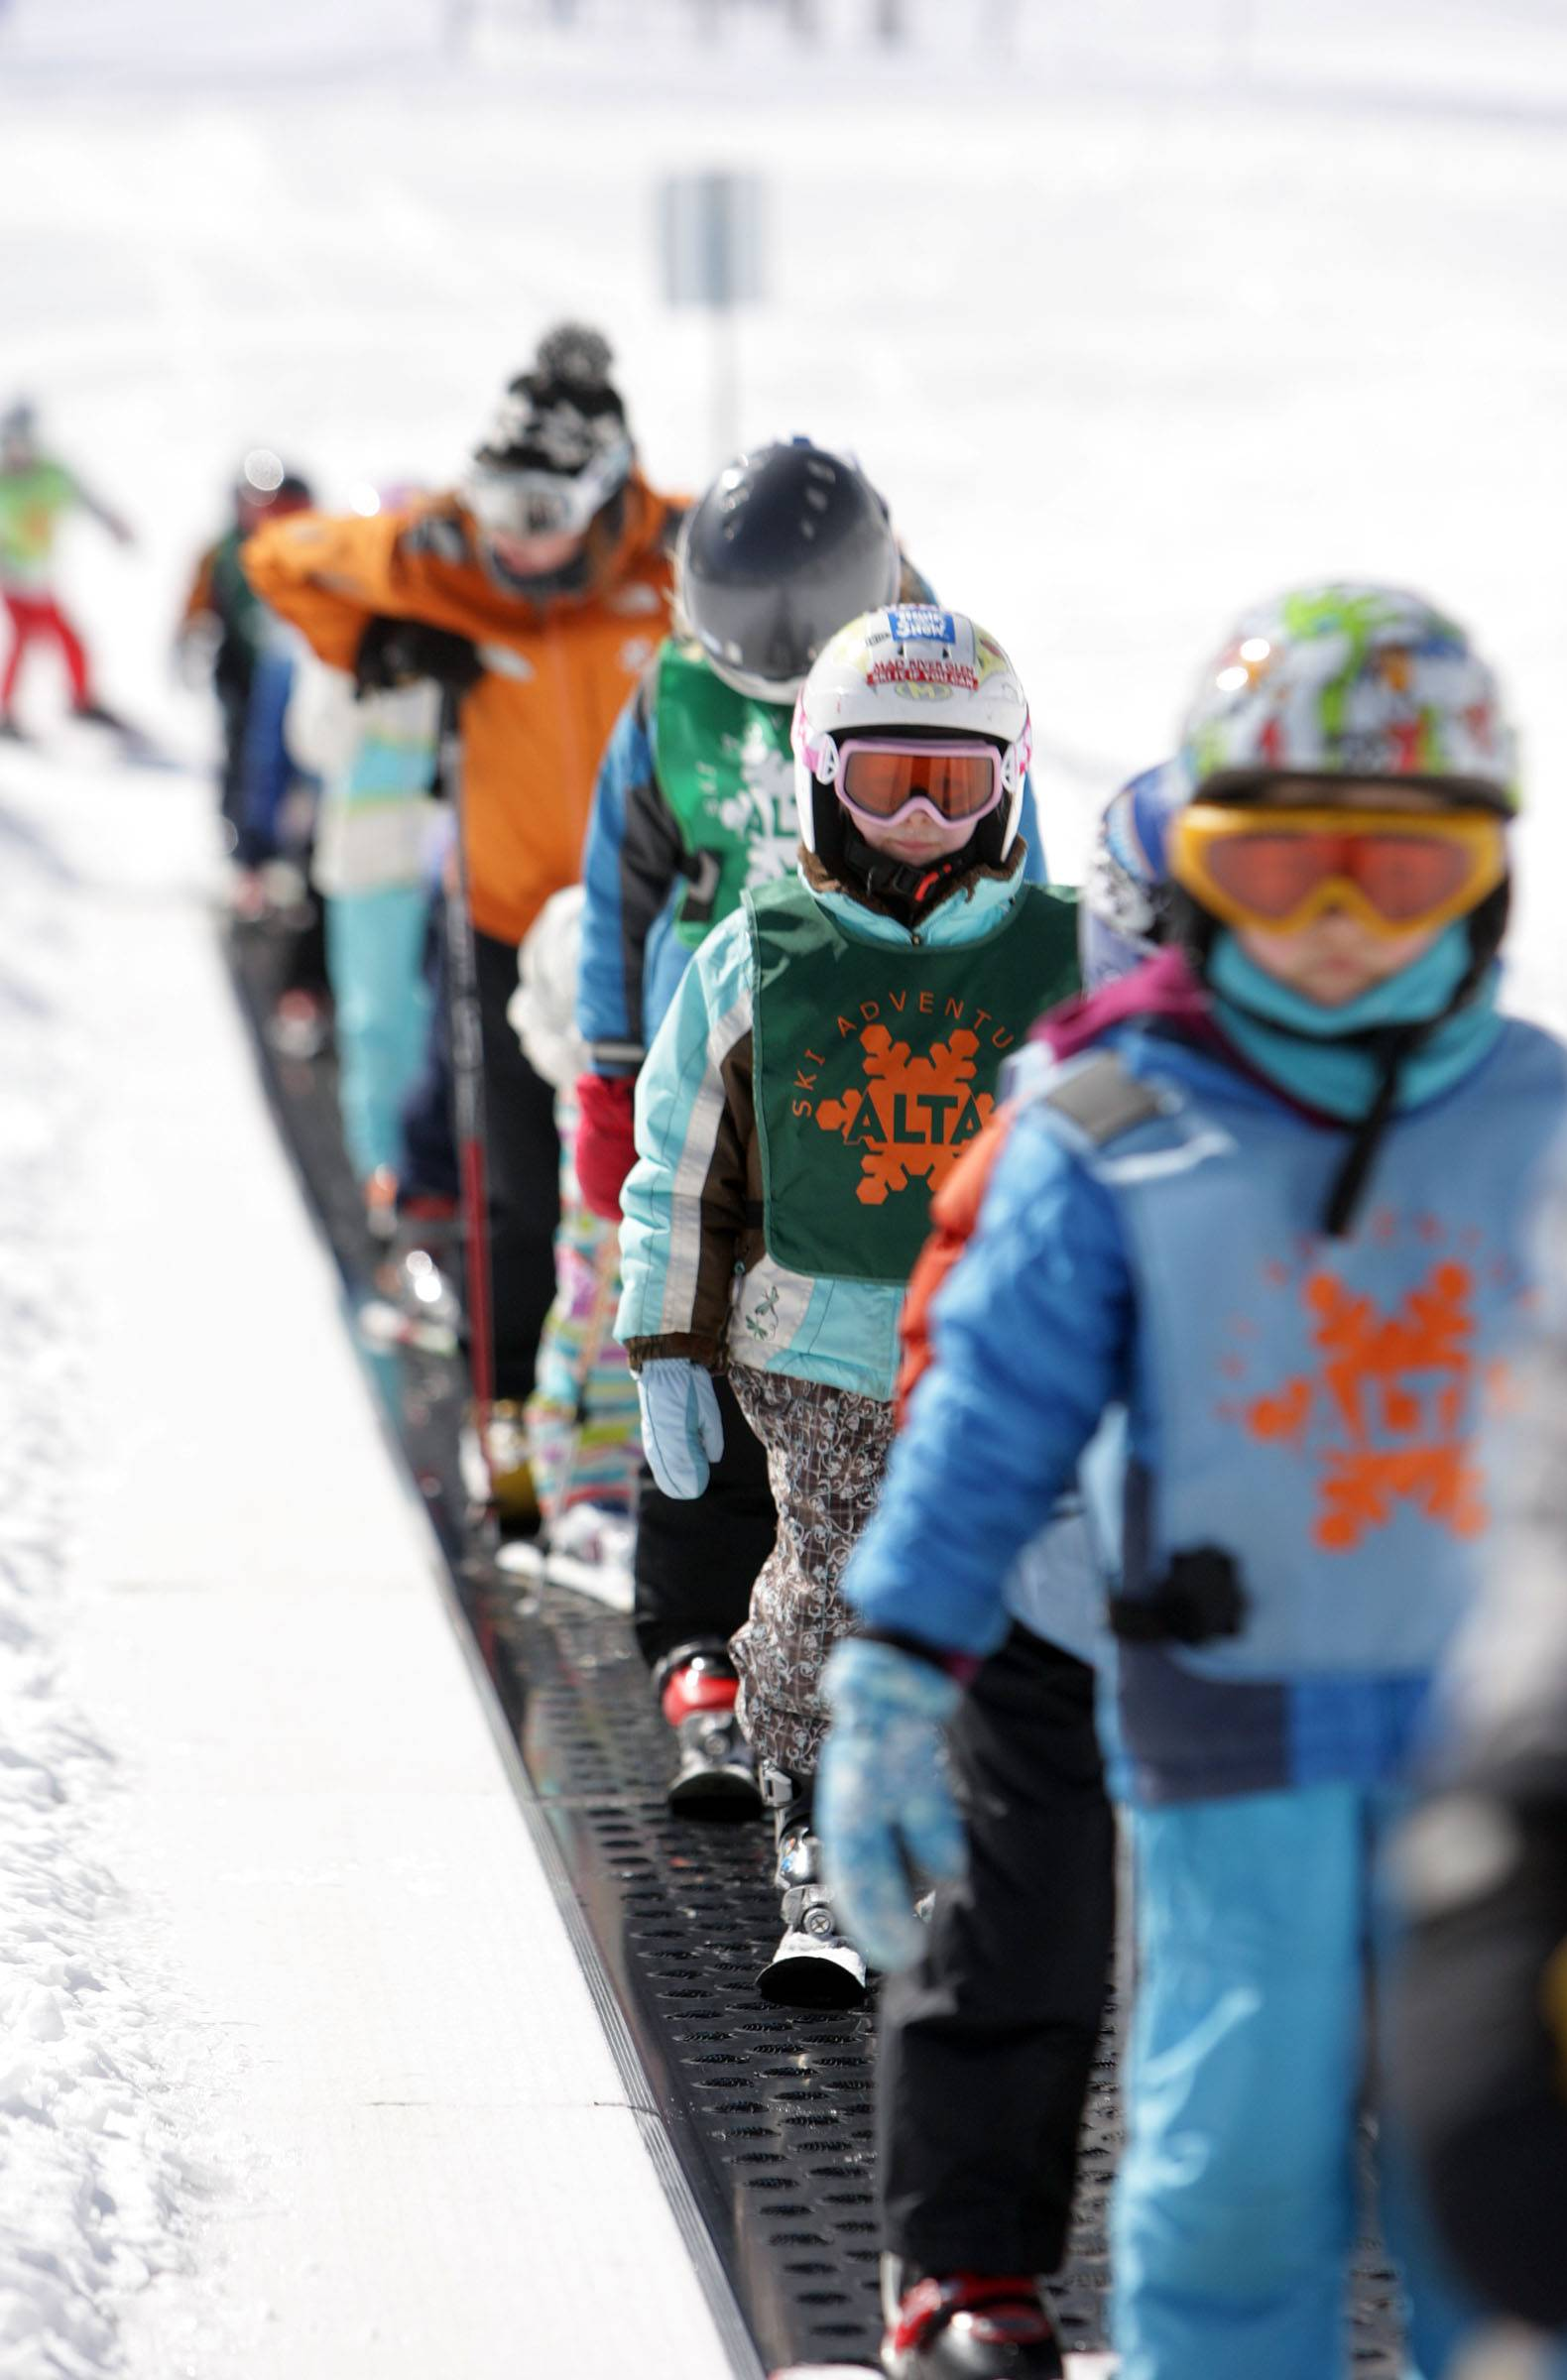 Young skiers ride the conveyor belt on Little Grizz at Alta Ski Resort in Little Cottonwood Canyon near Salt Lake City. A group of snowboarders suing to get access to Alta ski area are headed to court.